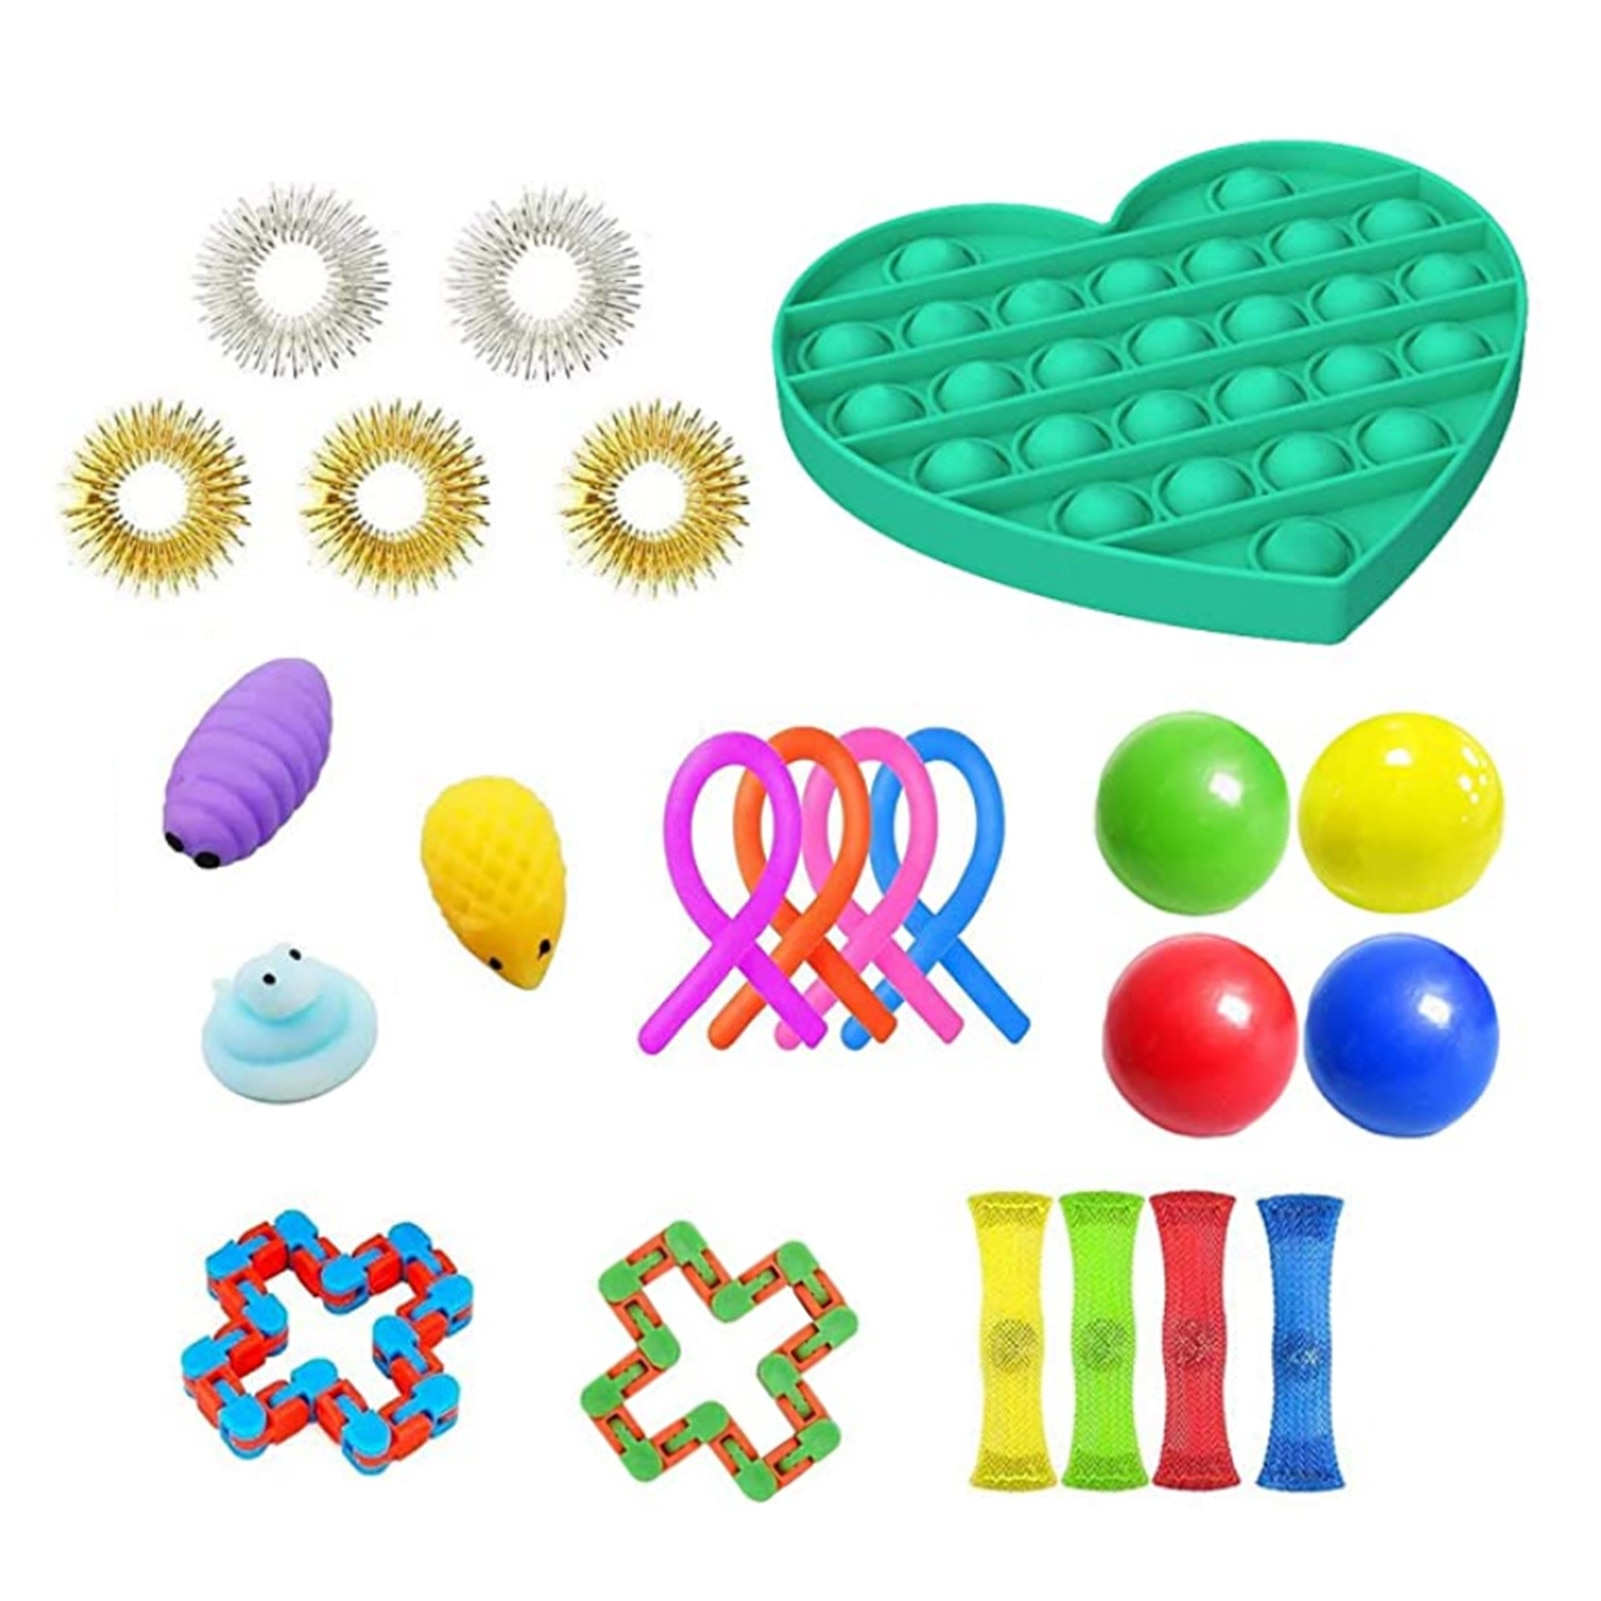 23PCS Simple Dimple Toys Desktop Educational Toy Mathematical Decompression Toy Autism Anxiety Relief Stress Bubble enlarge